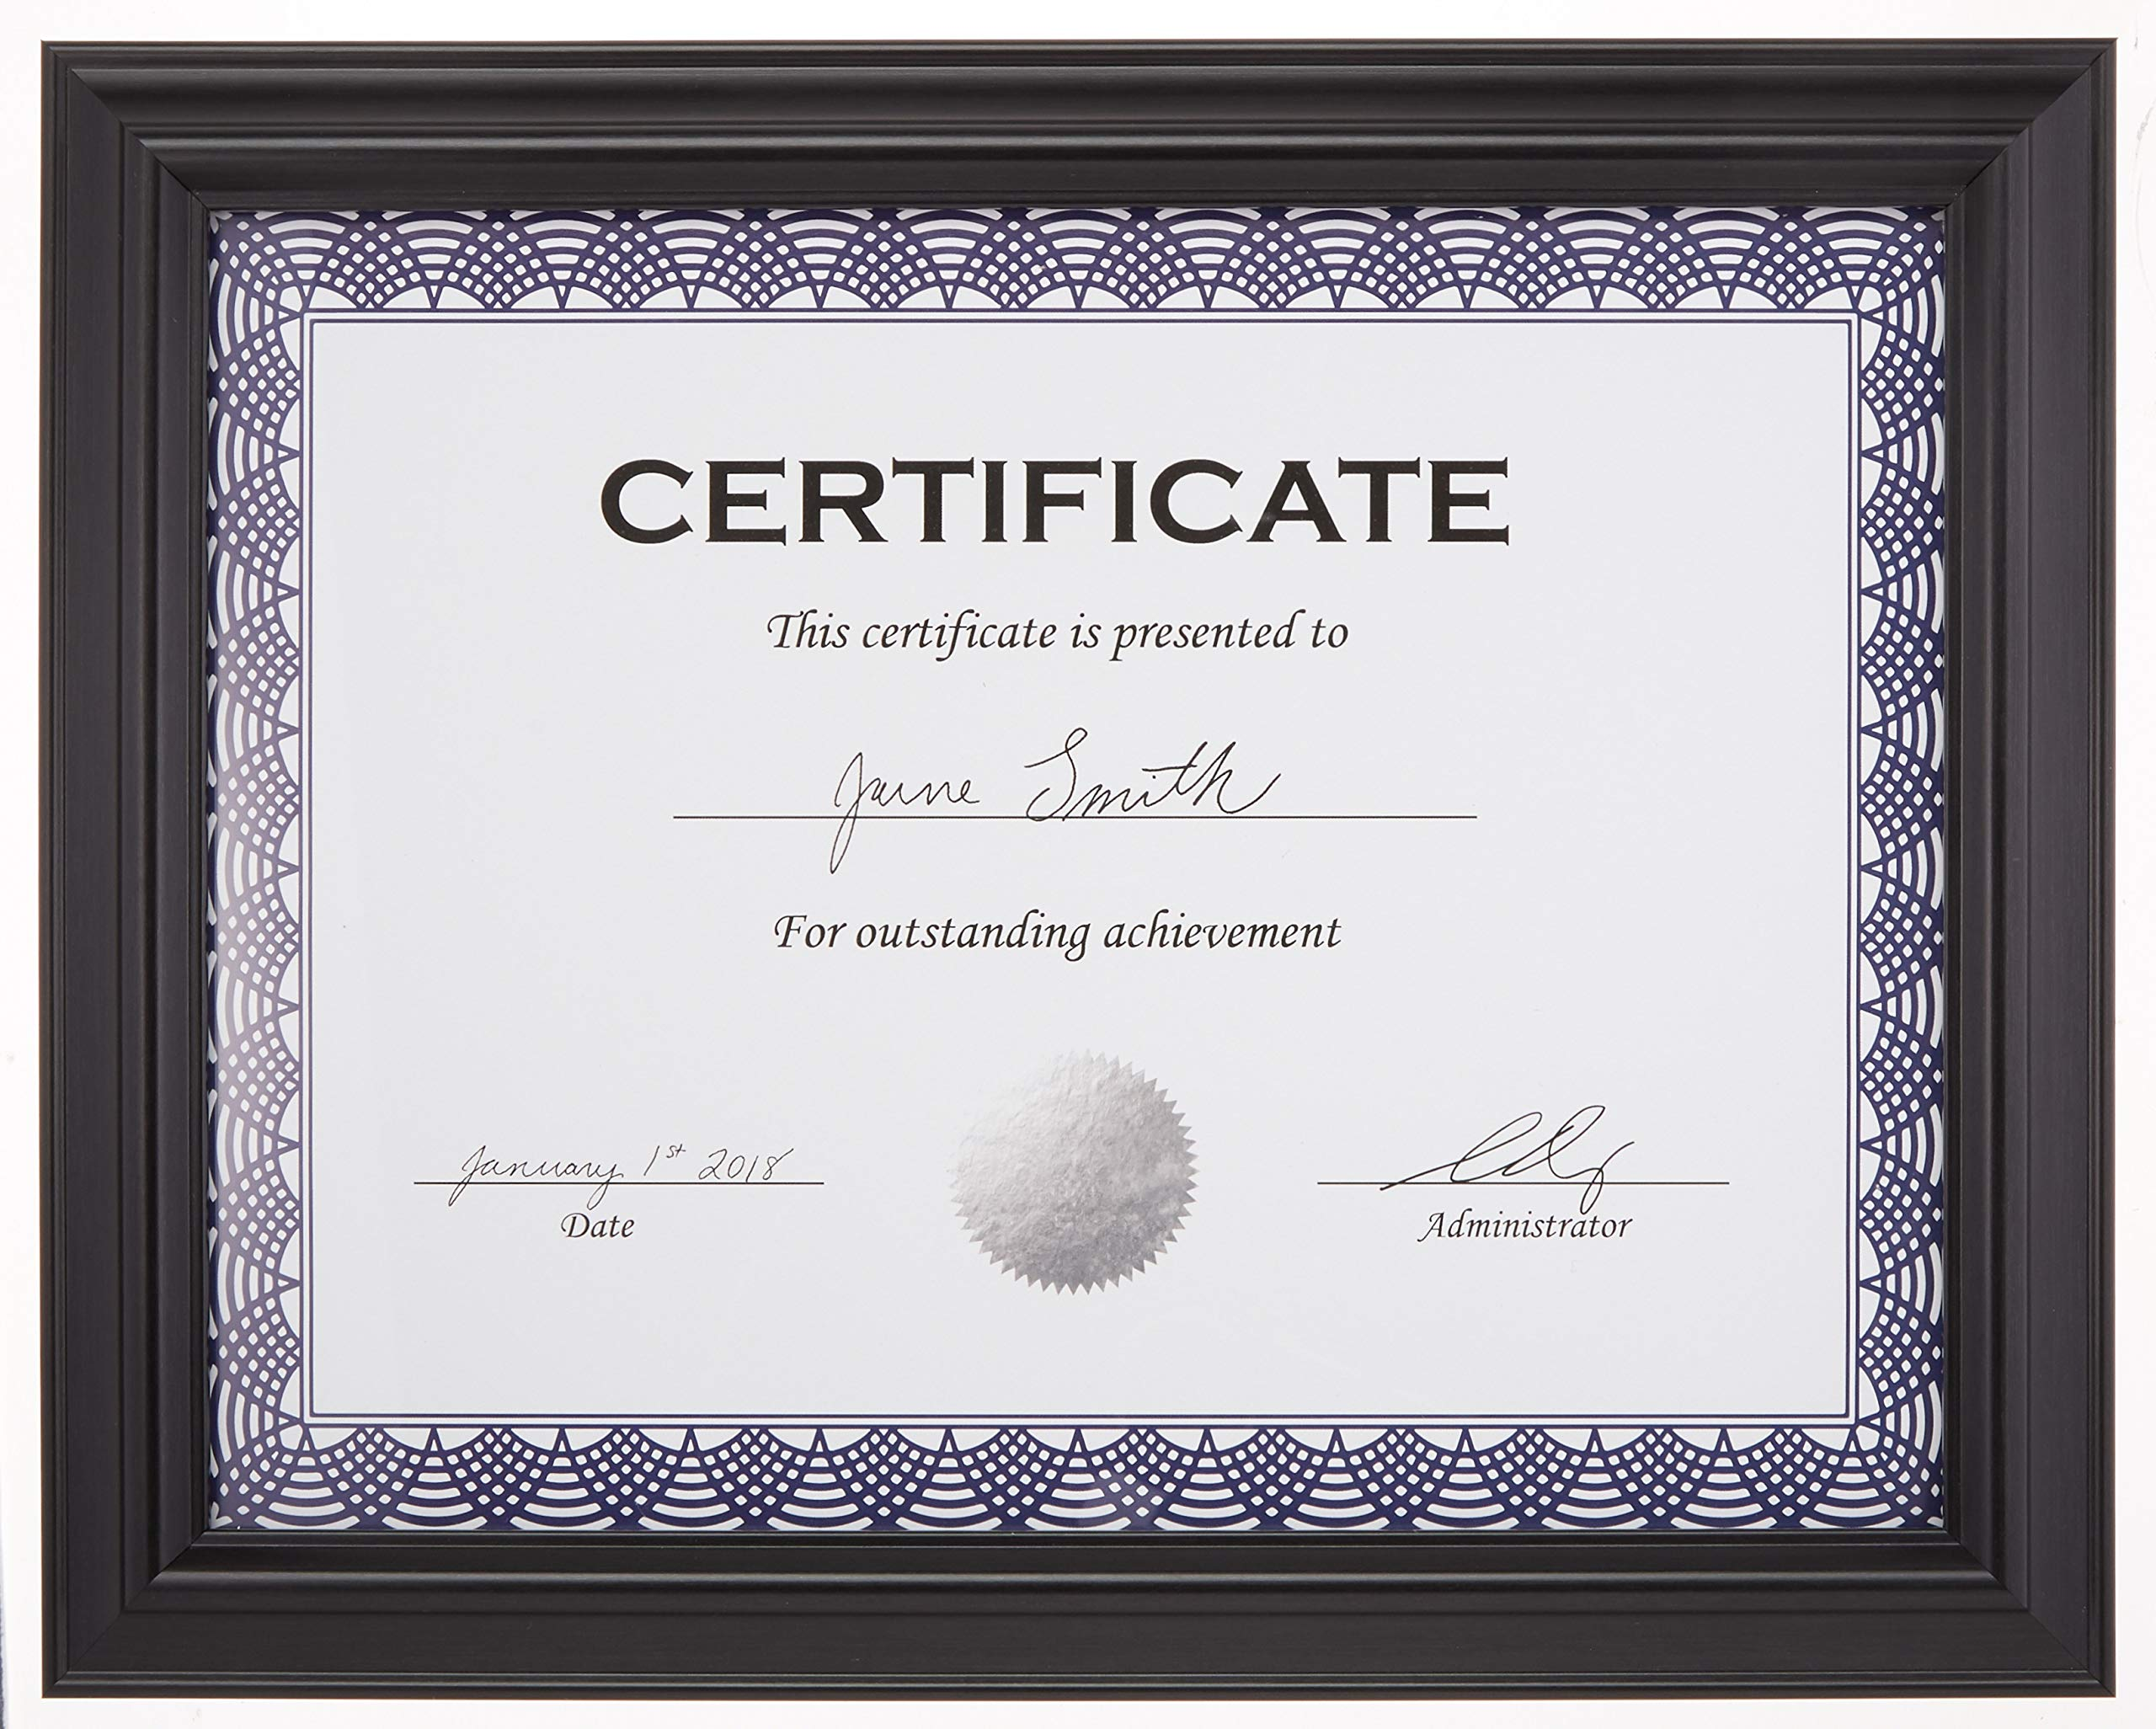 AmazonBasics Certificate Document Frame Without Mat, 8.5'' x 11'', Black, 3-Pack